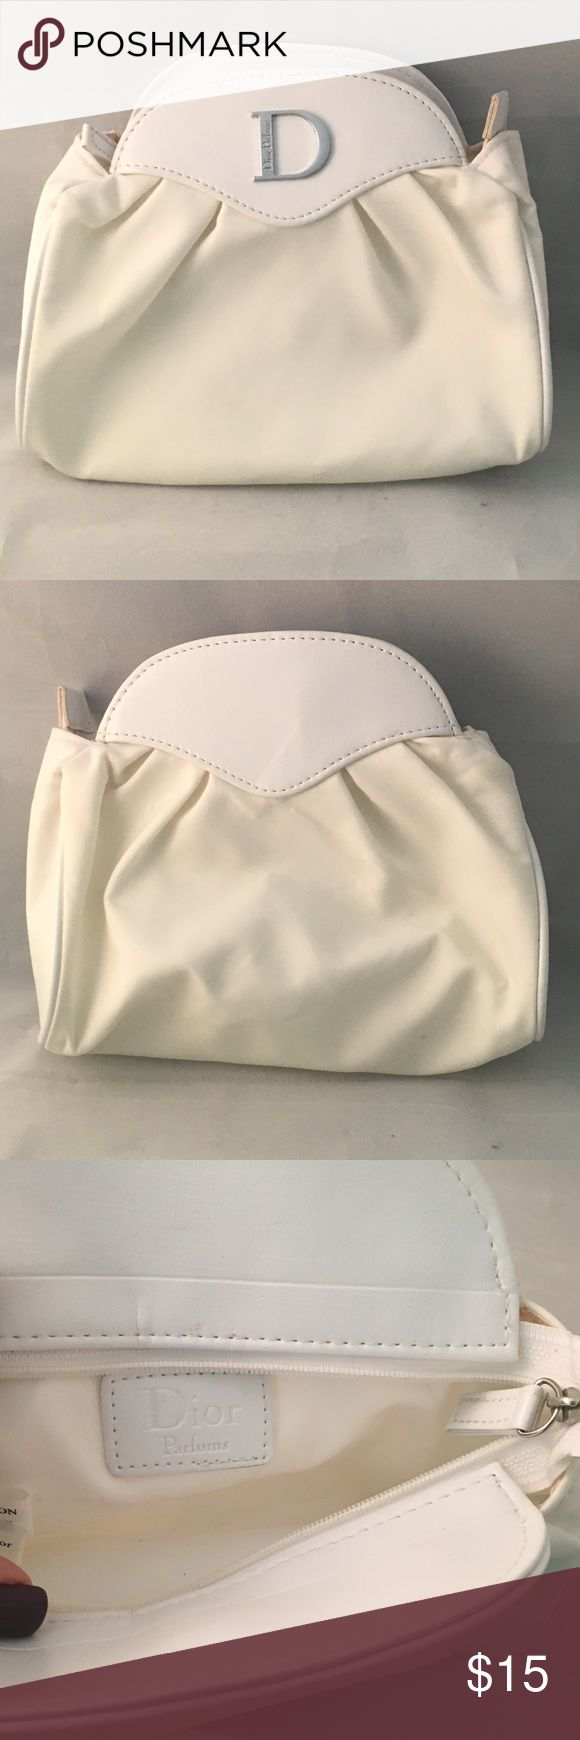 Dior Cosmetic/Perfume Bag Gently used - has some discoloration (shown in photos) Dior Bags Cosmetic Bags & Cases